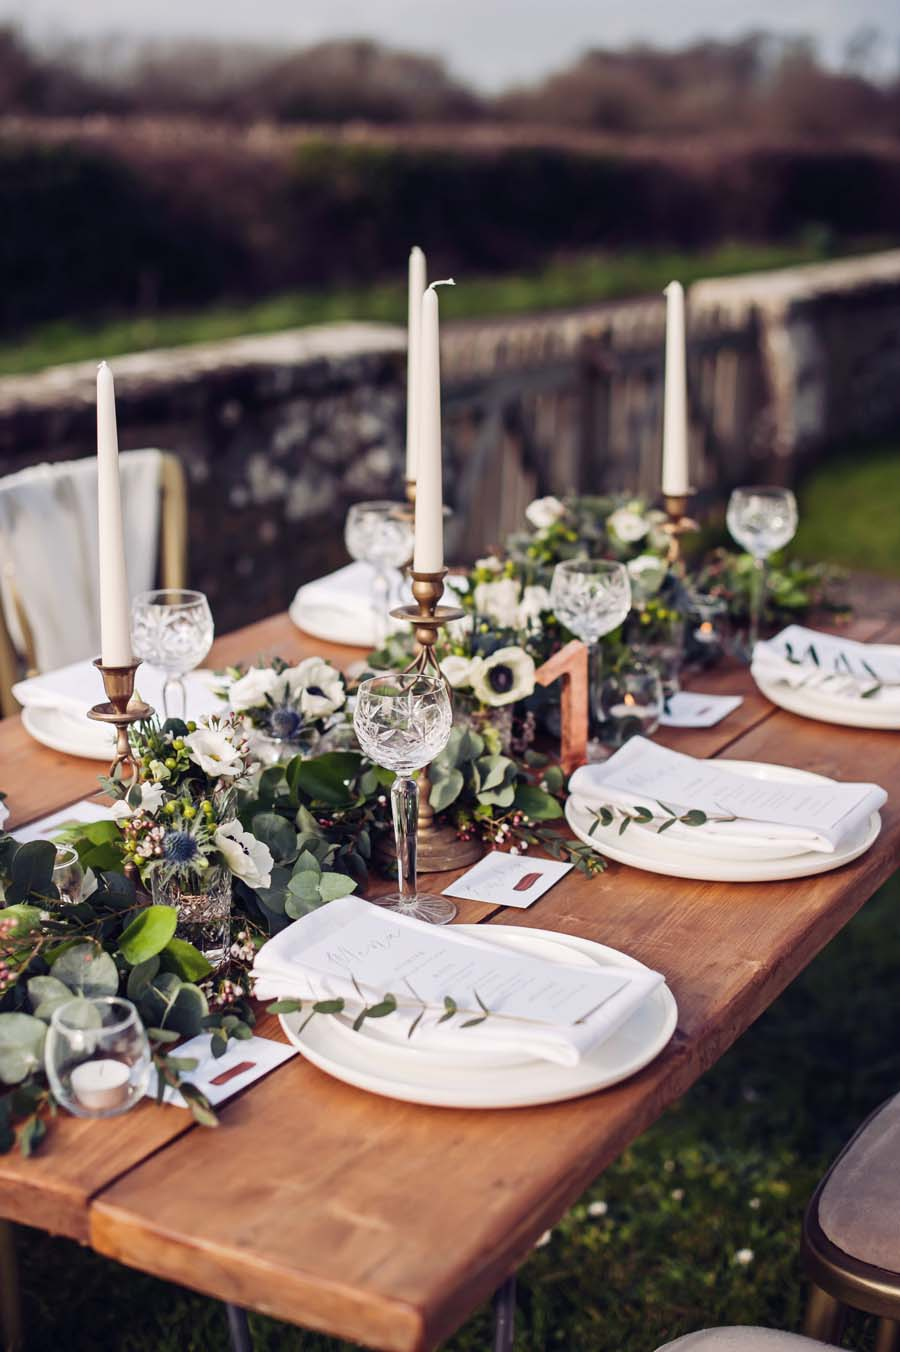 Uncategorized outdoor vintage glam wedding rustic wedding chic - For Some Couples Making Decisions On How To Style Their Wedding Day Can Be Very Confusing And Overwhelming From Colour Schemes Styles The Latest Trends